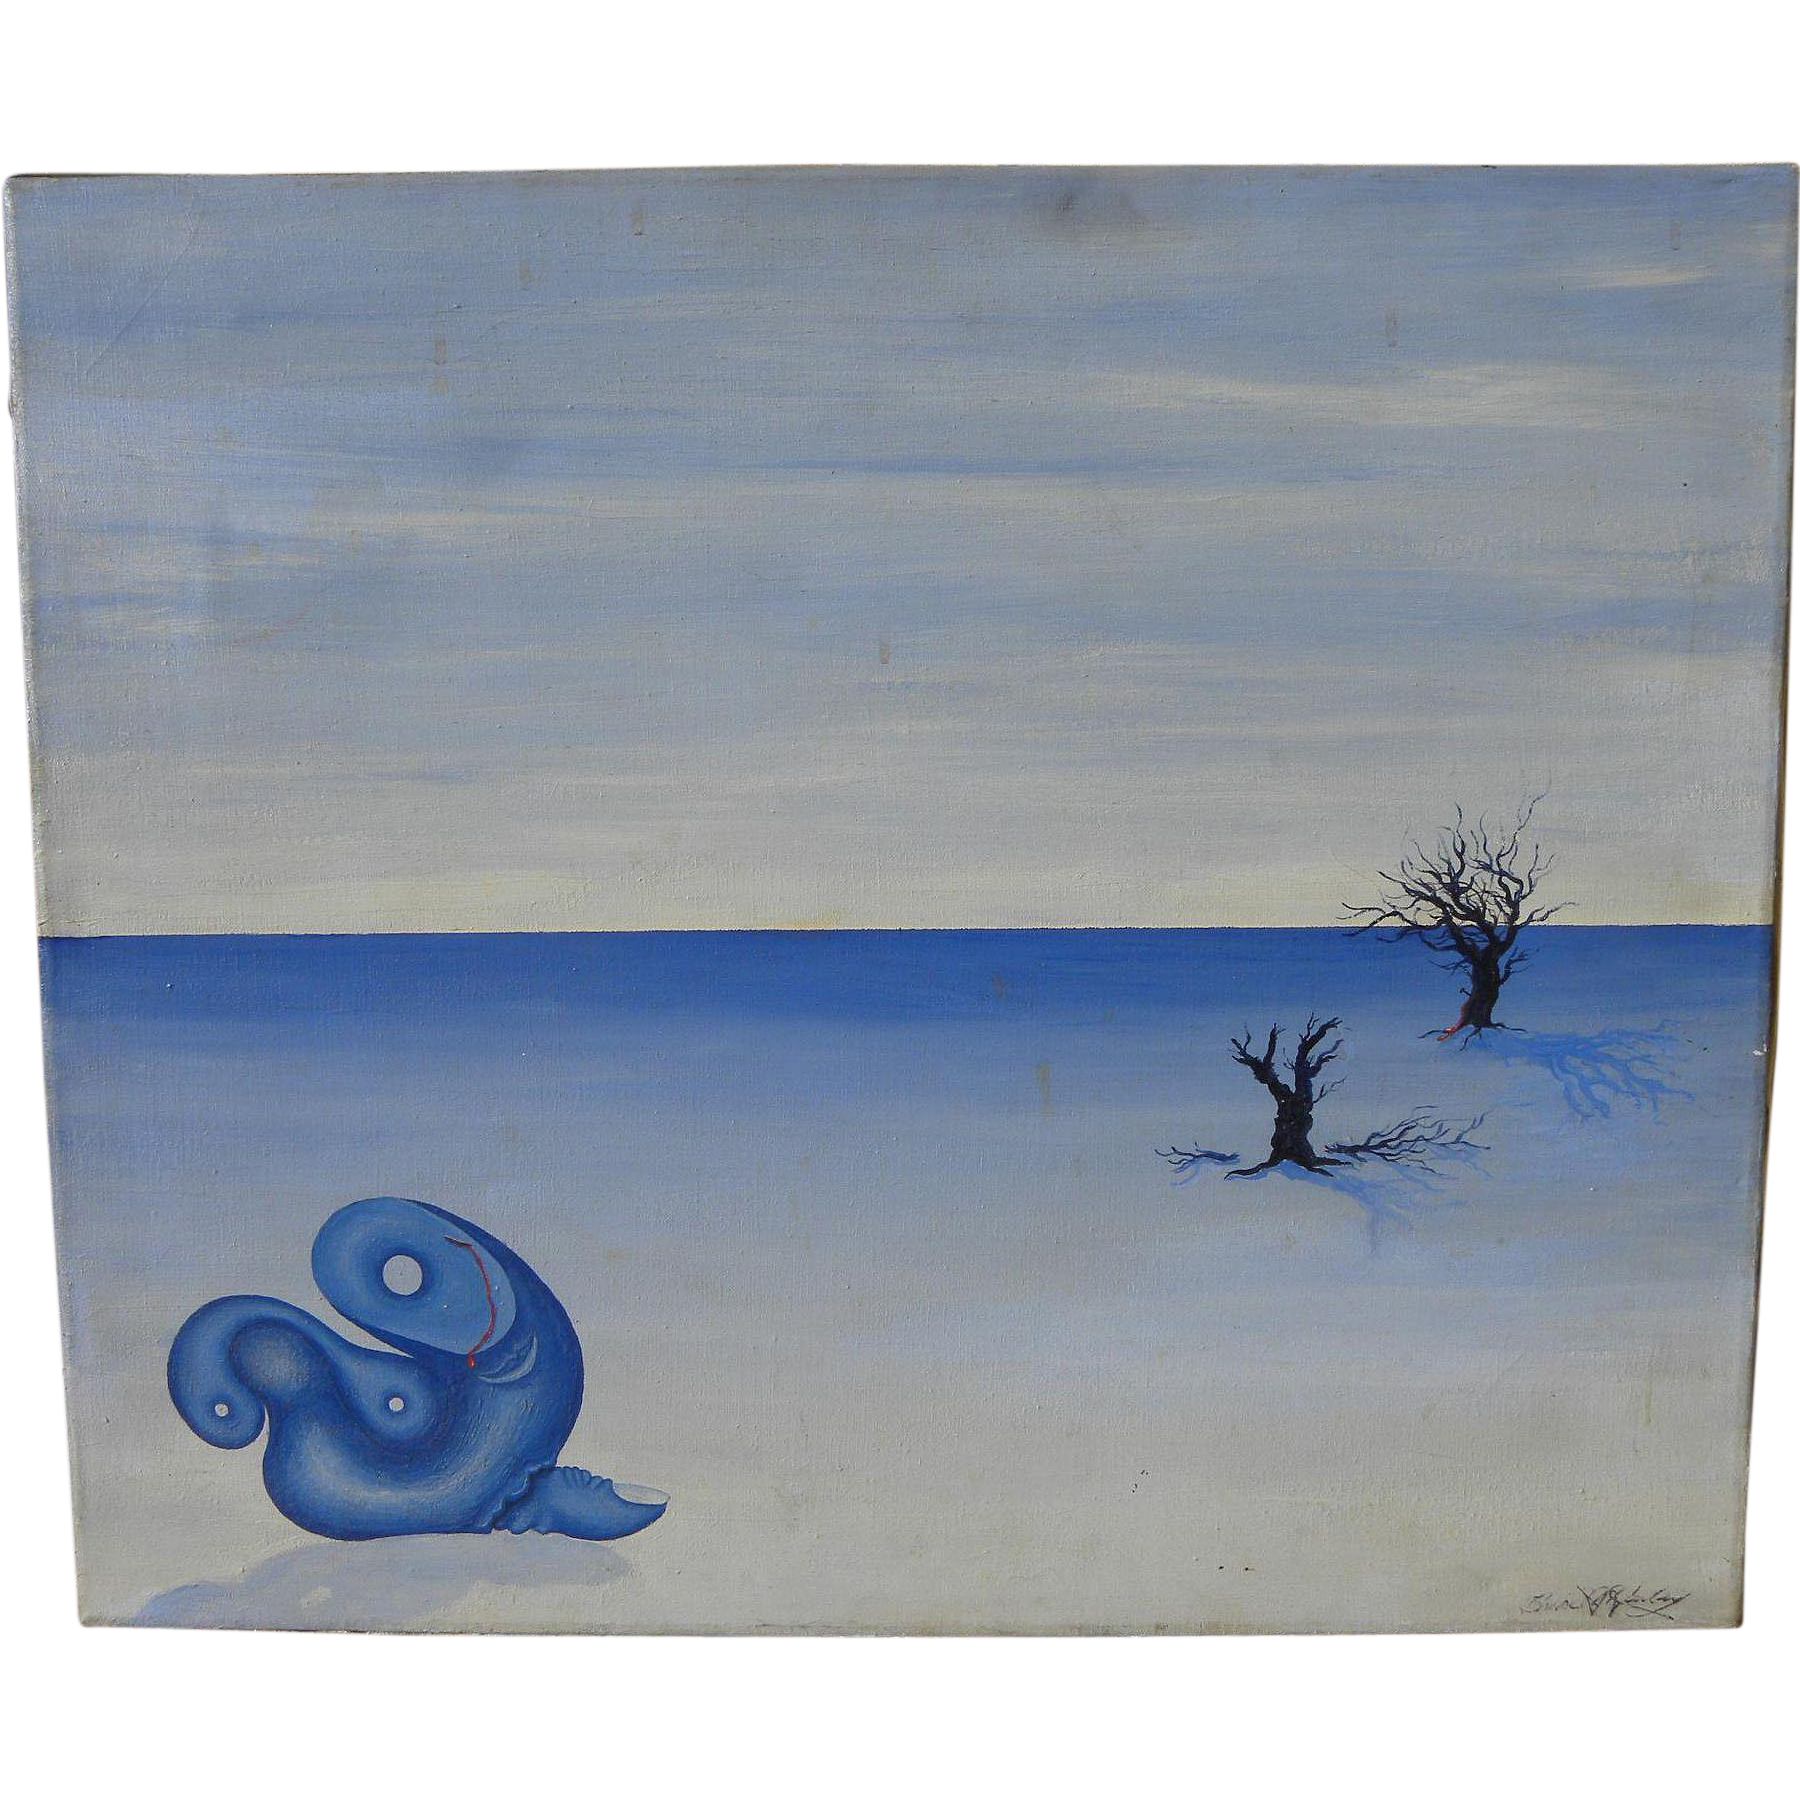 American surrealist 1974 signed painting